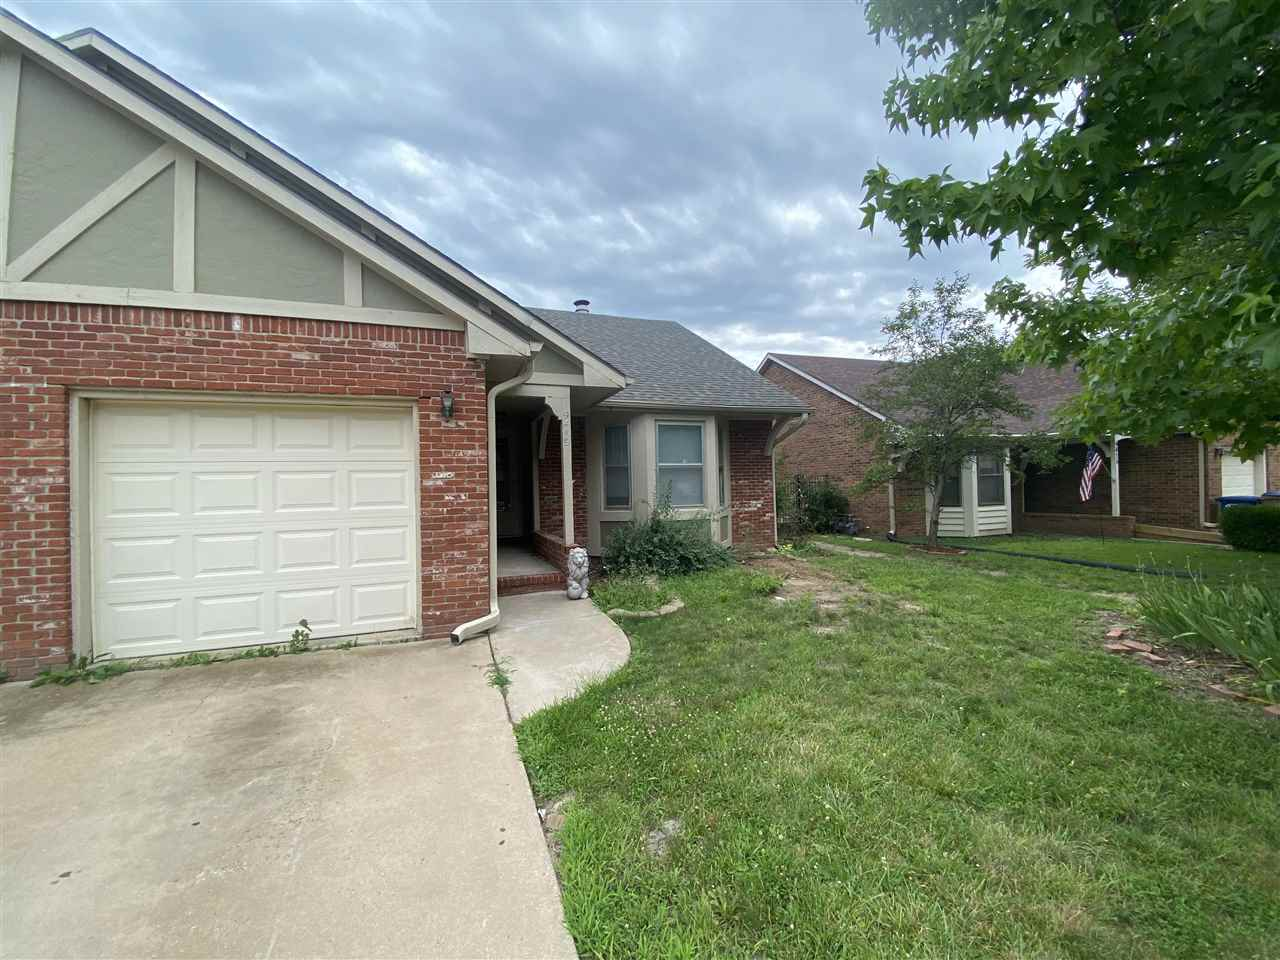 Freshly painted 3 bed 2 bath townhome in East Wichita.  Huge living area with vaulted ceiling on mai